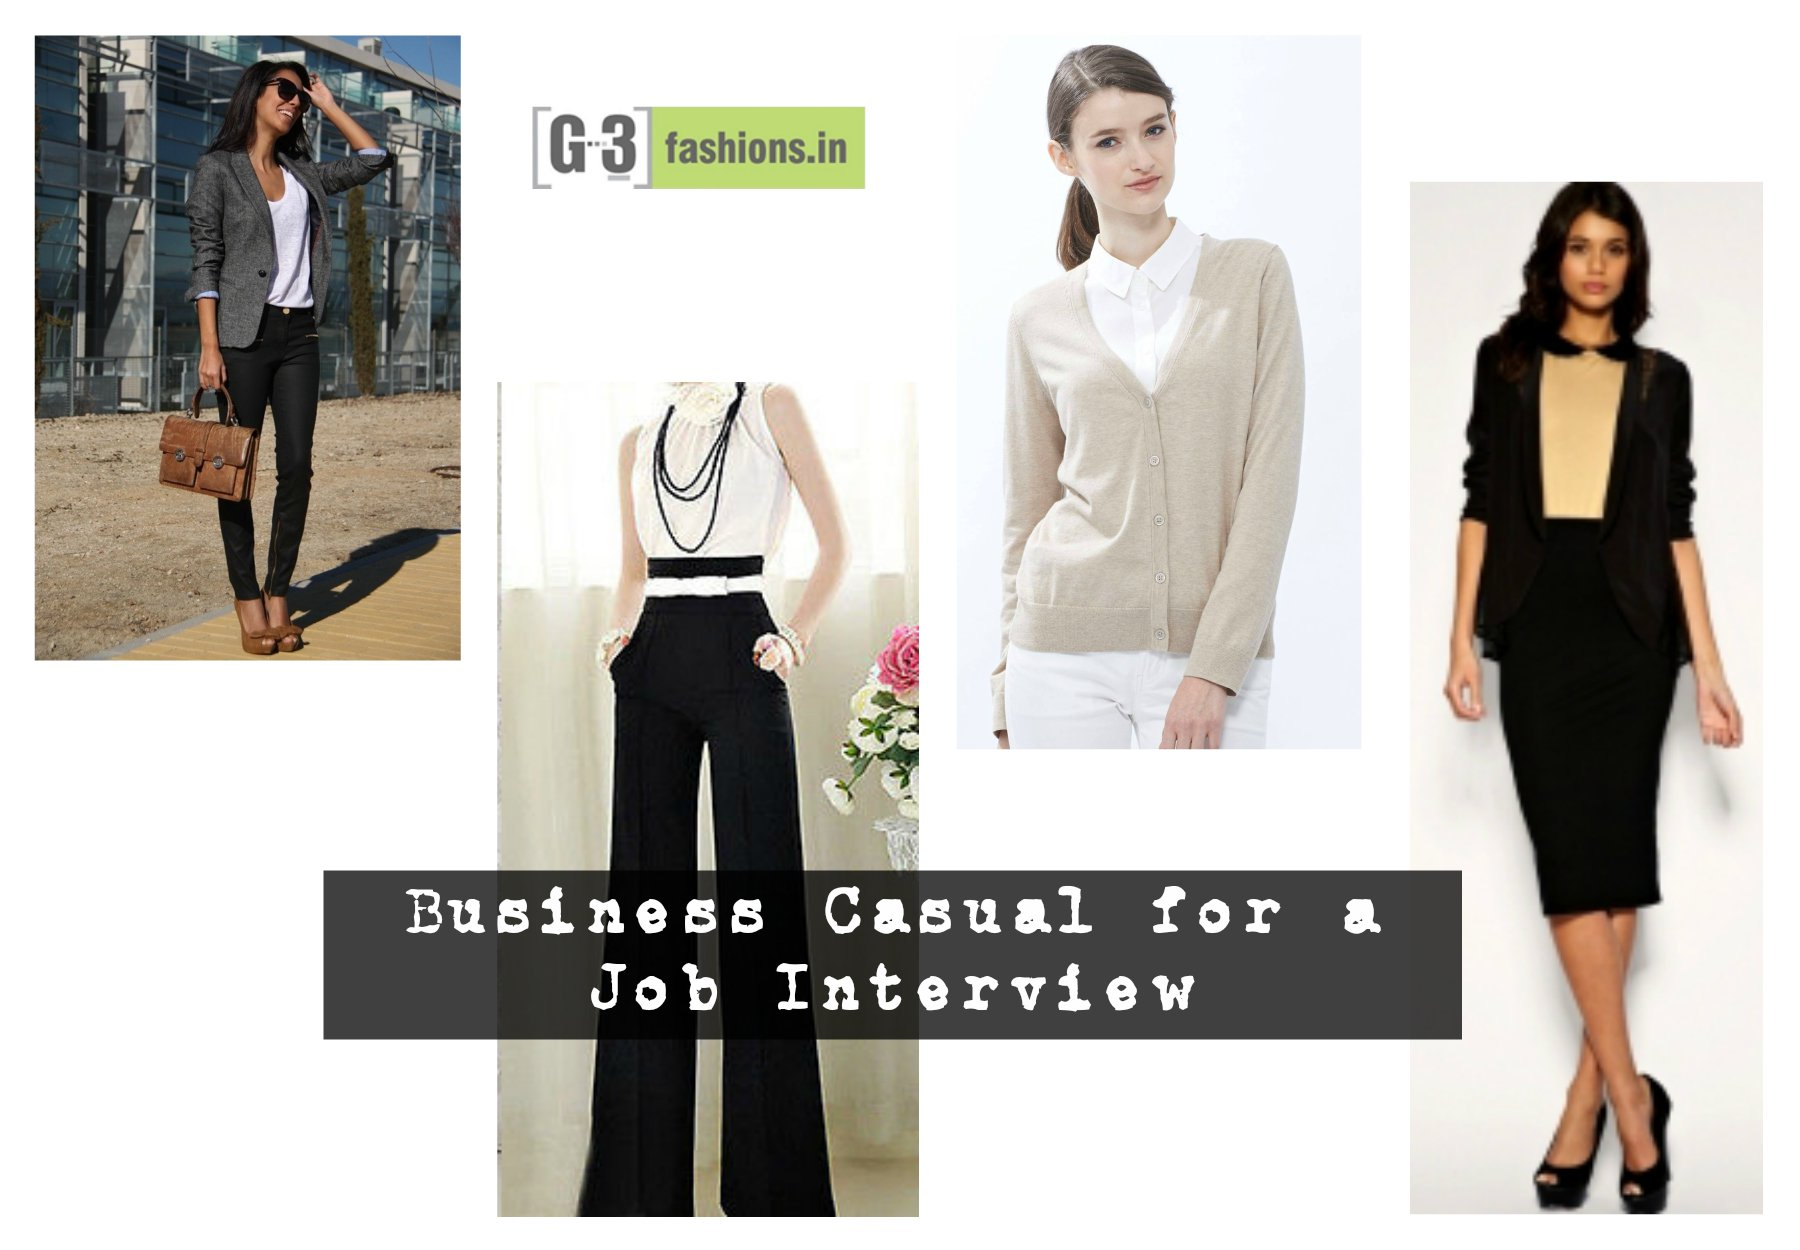 how to dress up for job interview women s wear g3fashion com business casual for women on a job interview how to dress for a job interview